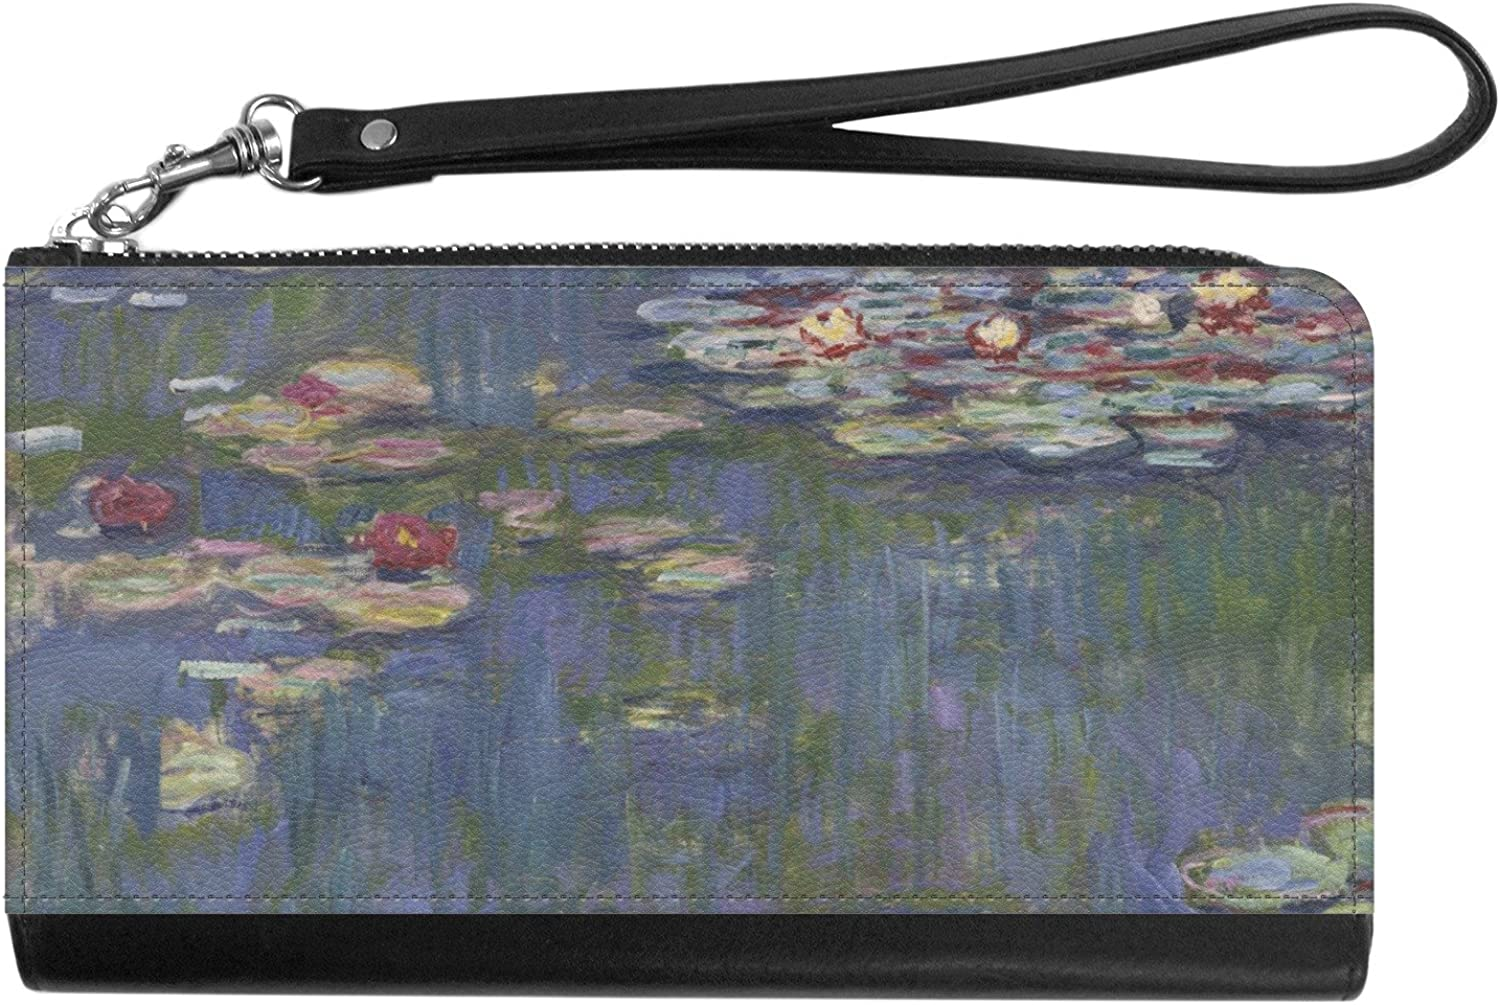 Water Lilies by Claude Monet Genuine Leather Smartphone Wrist Wallet